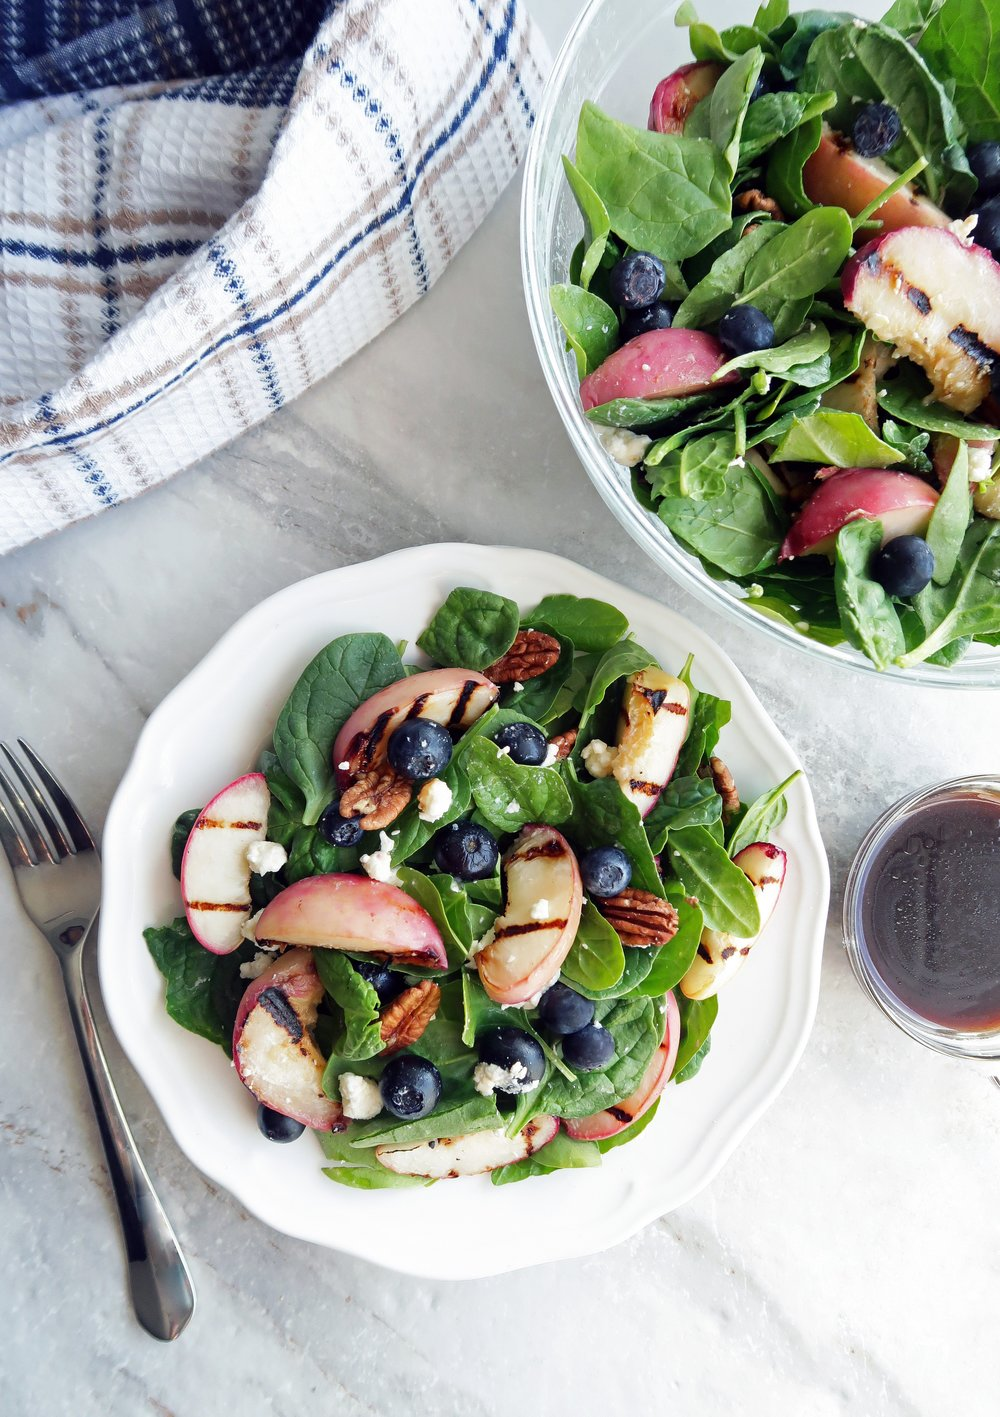 A overhead view of a fresh bowl of grilled peach blueberry spinach salad with honey balsamic vinaigrette on the side.